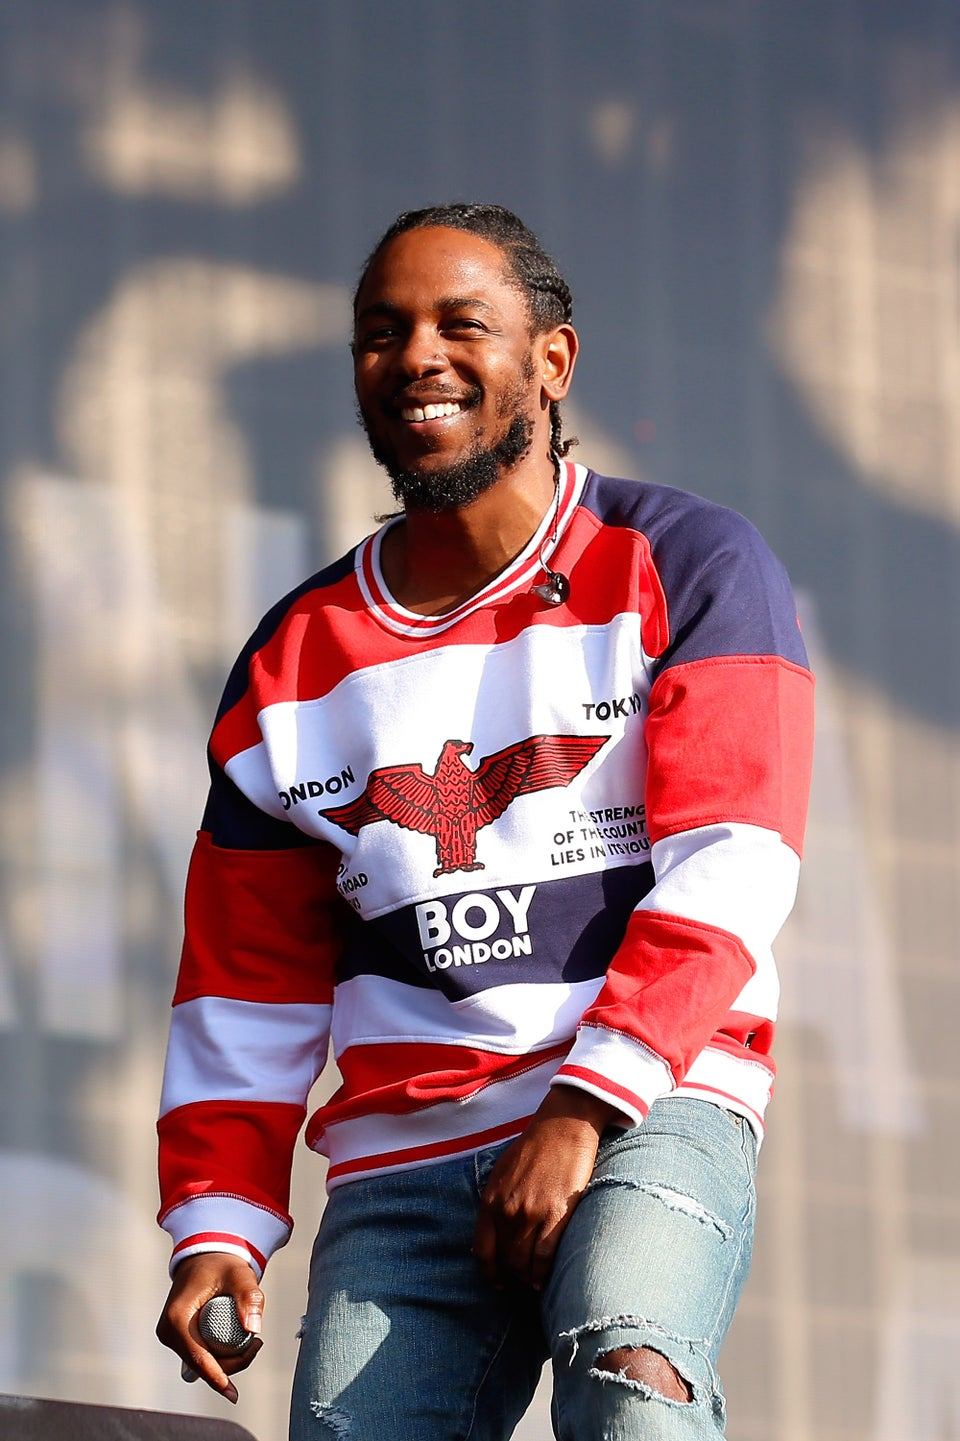 Kendrick Lamar Talks Thrifting, Prince, and Starting His Own Fashion Line